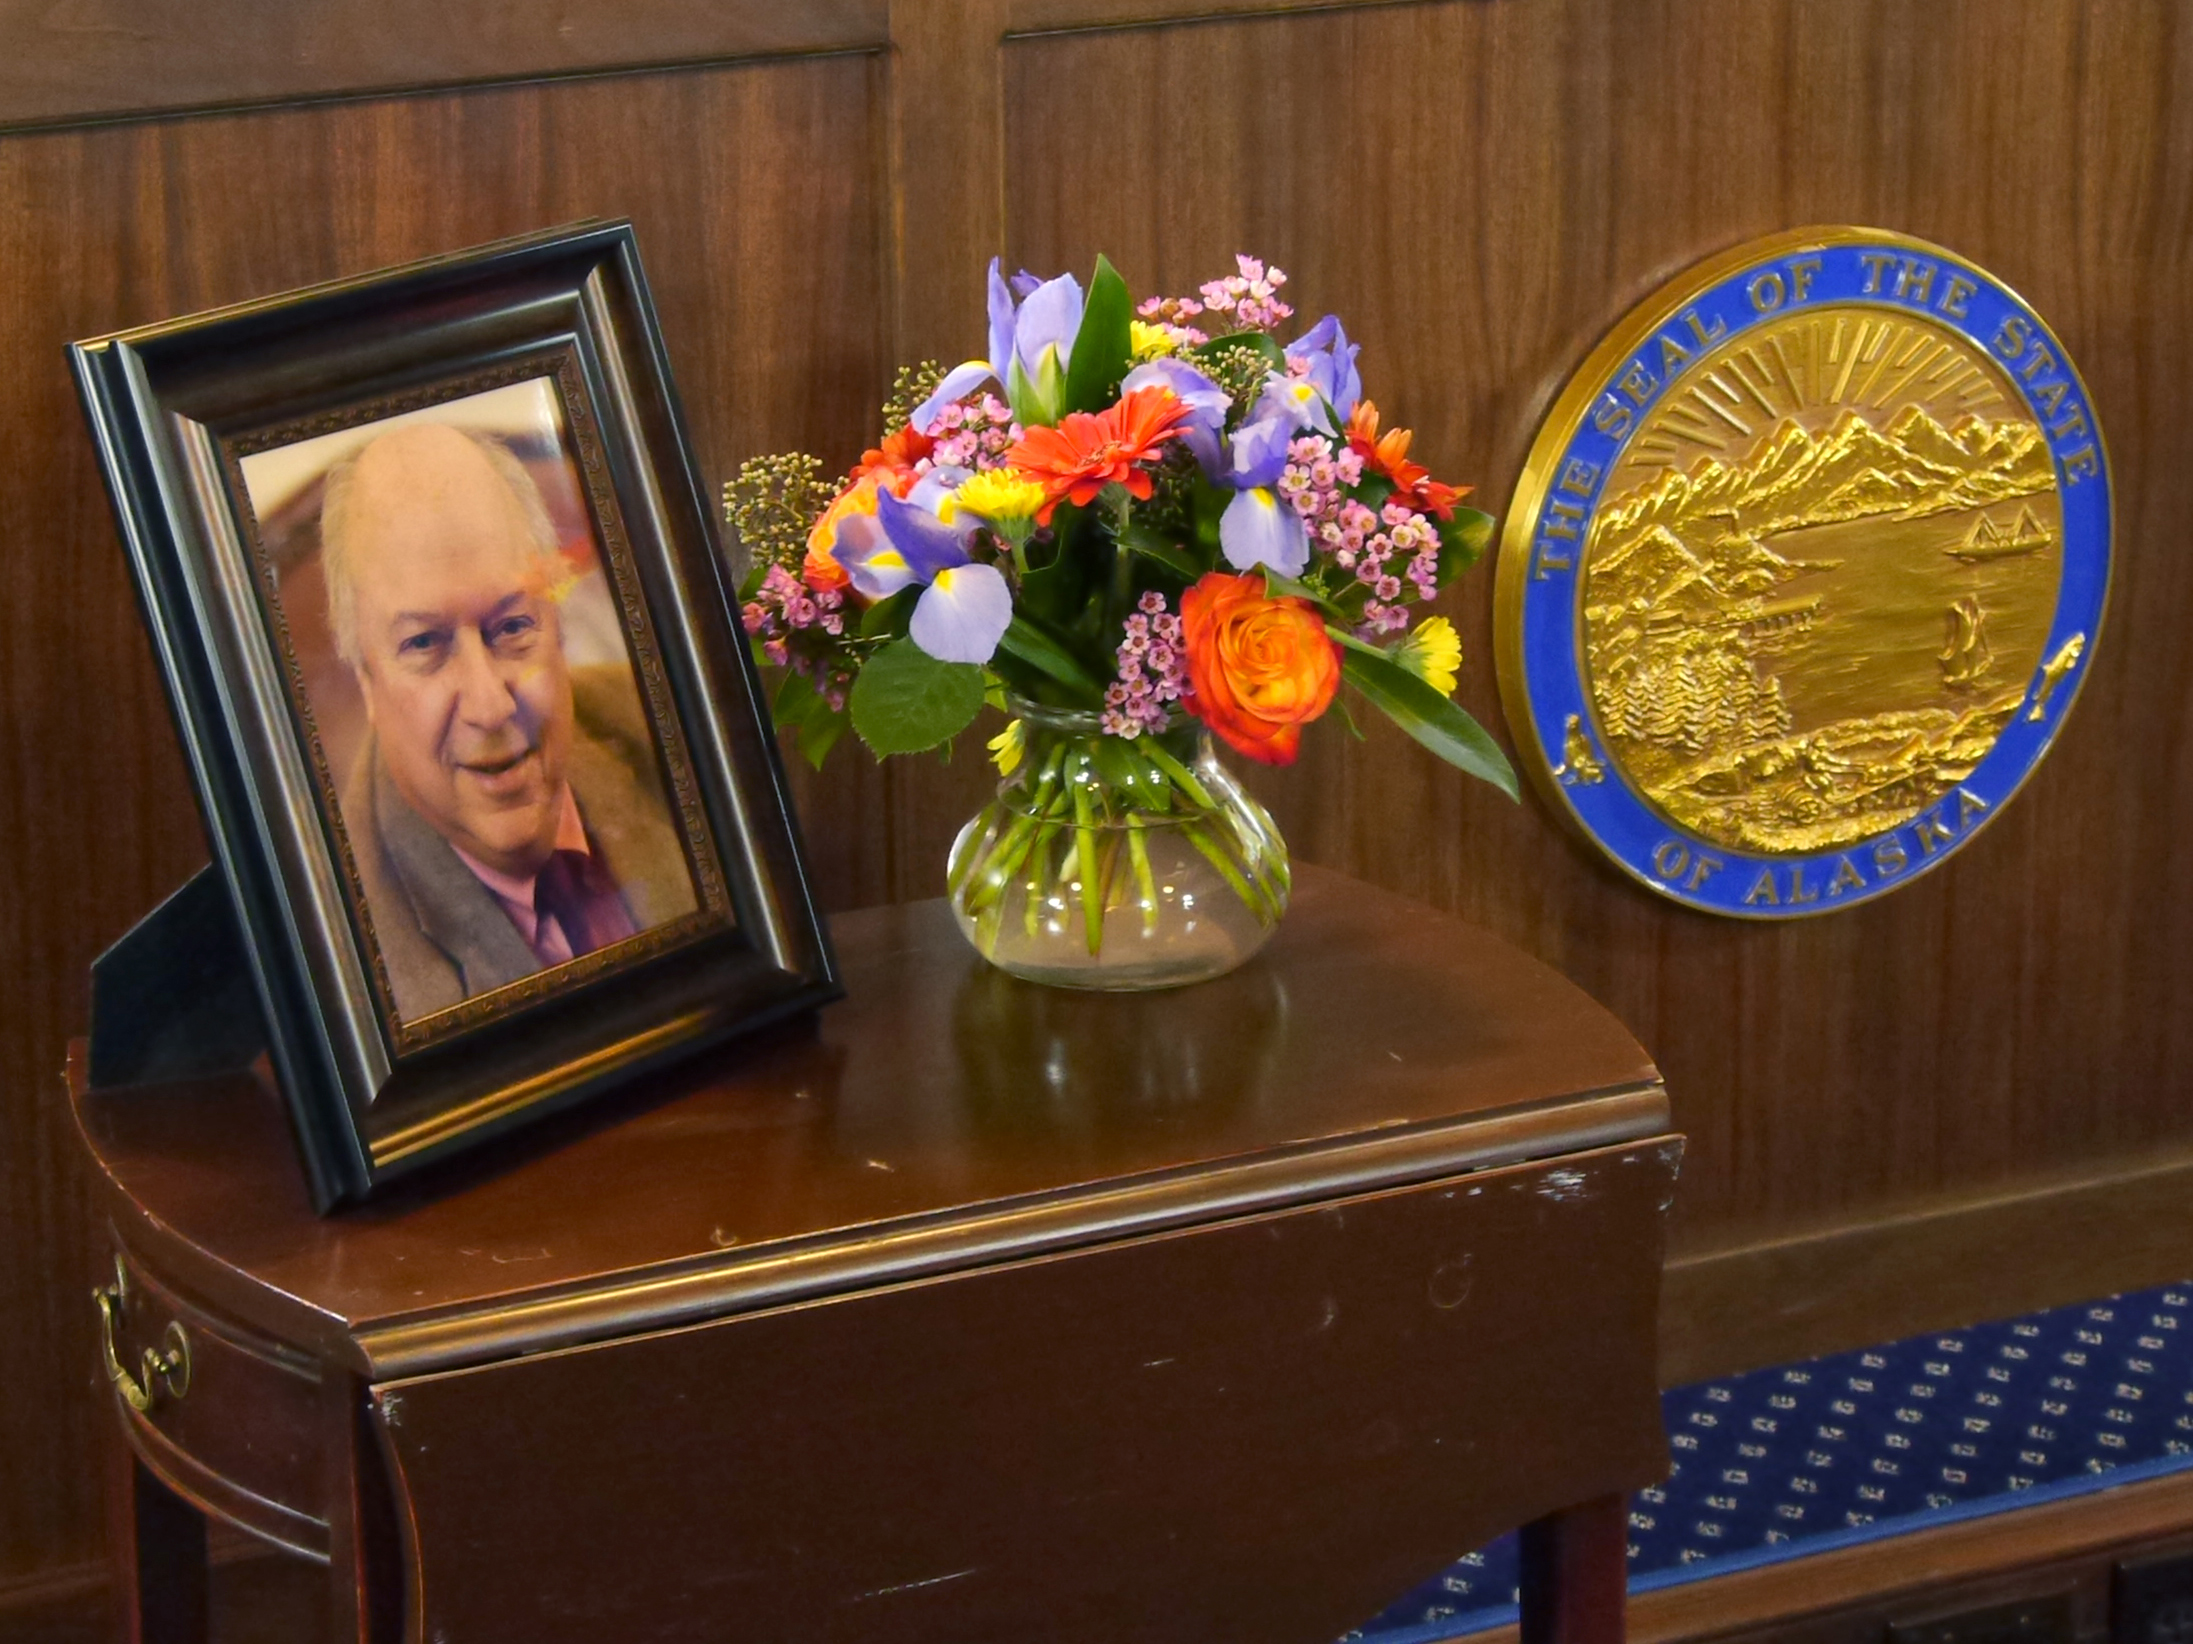 Photo of Rep. Max Gruenberg and state seal